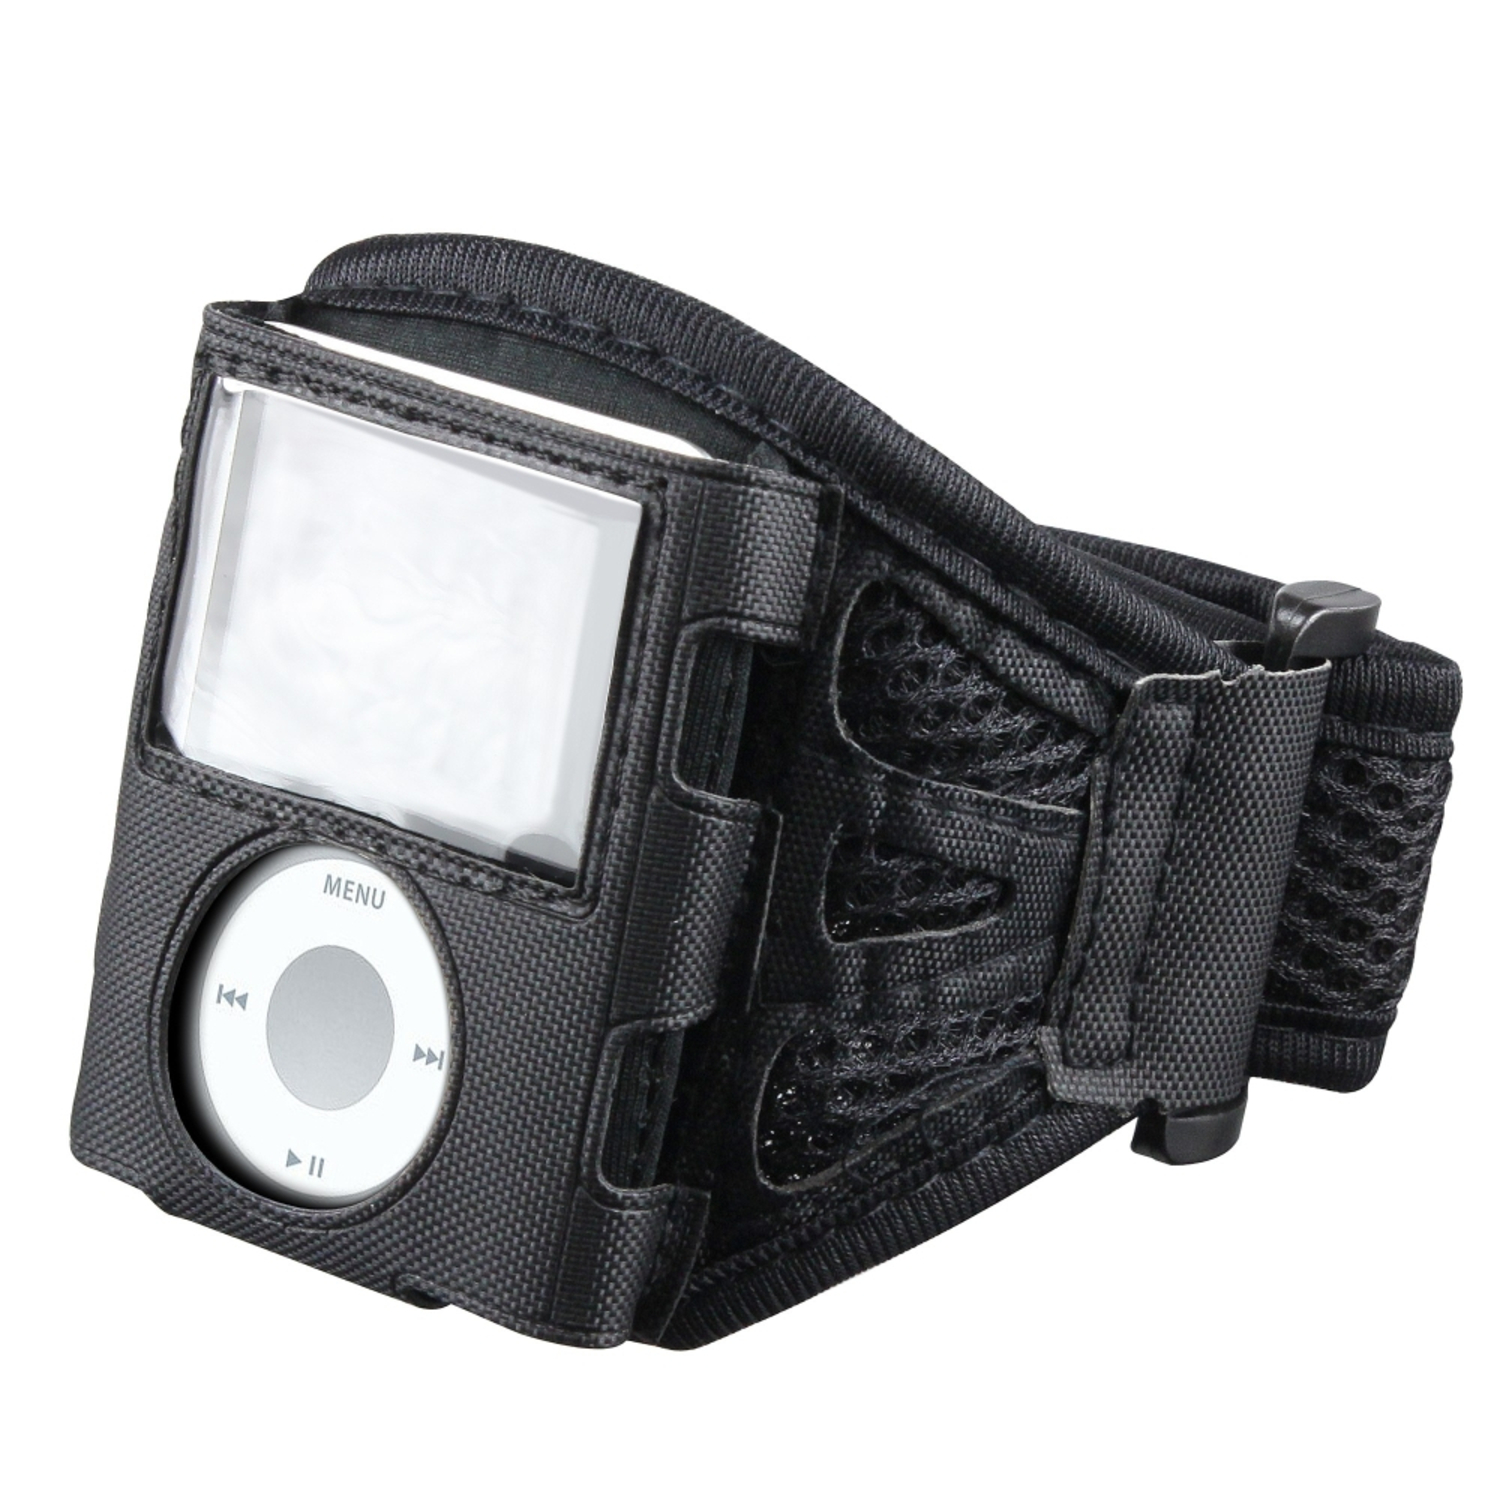 Insten Deluxe Sports ArmBand Case For Apple iPod Nano 3rd Gen 3 3G, Black